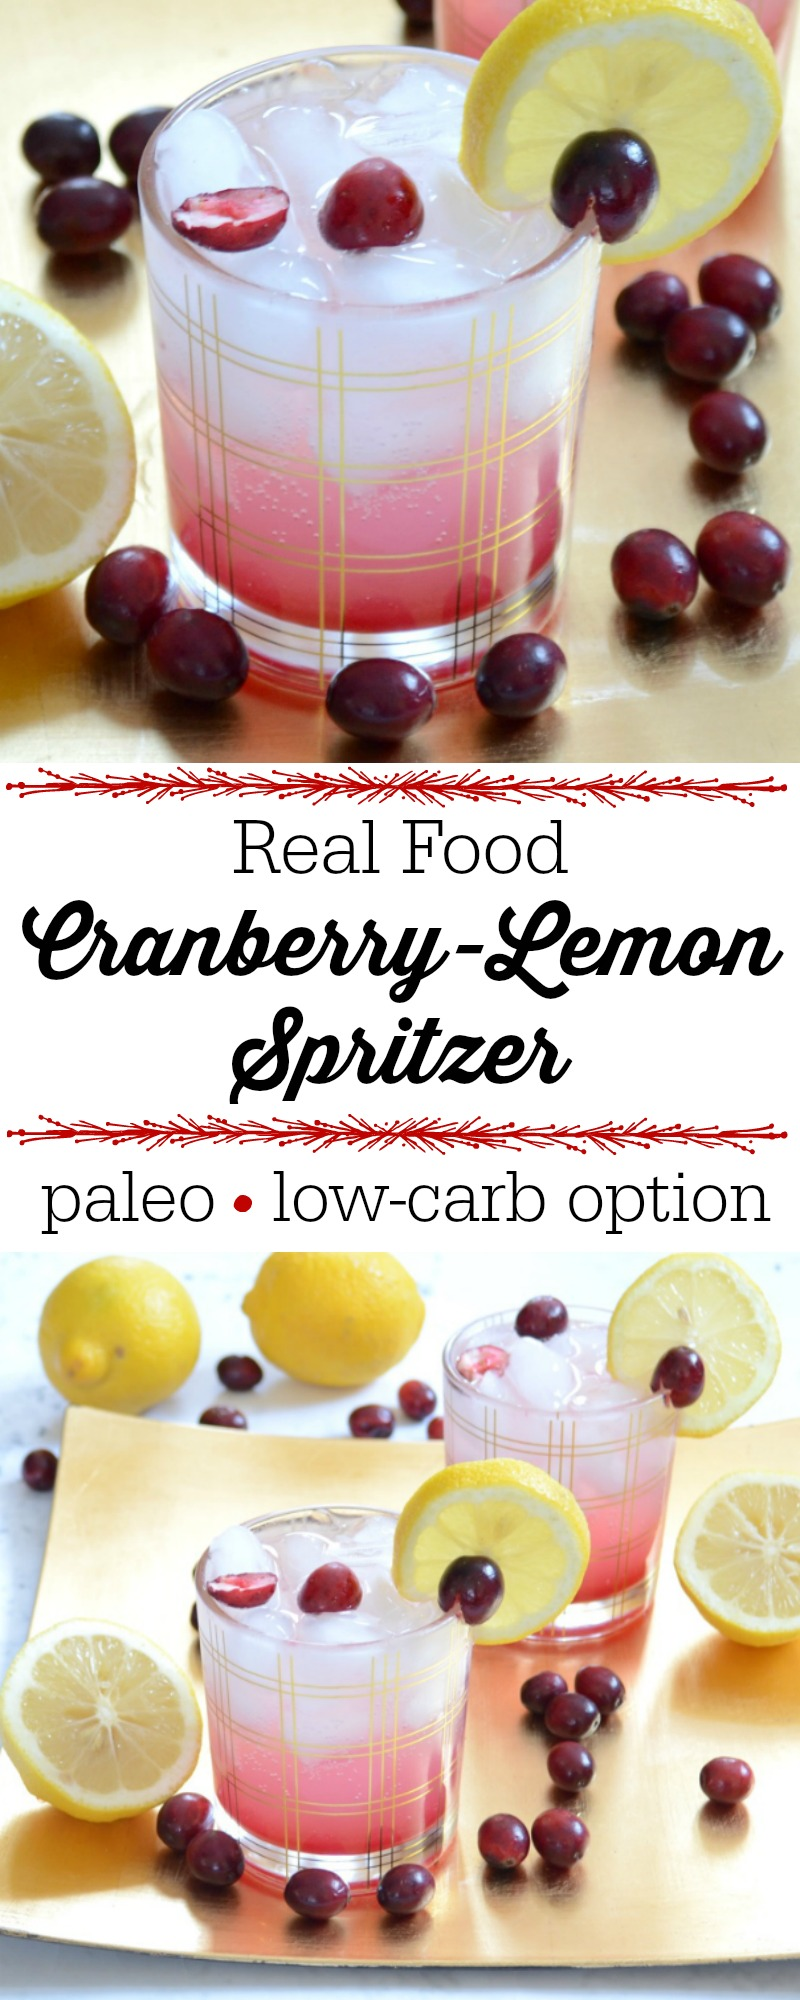 If you prefer a fancy holiday drink sans alcohol and sugar, this Real Food Cranberry-Lemon Spritzer is IT! Both cranberries and lemons are loaded with vitamins, antioxidants, and cleansing properties. They're wonderful for stimulating digestive juices, so this spritzer makes the perfect pre-dinner drink! This Paleo holiday drink has a low-carb sweetener option, too!